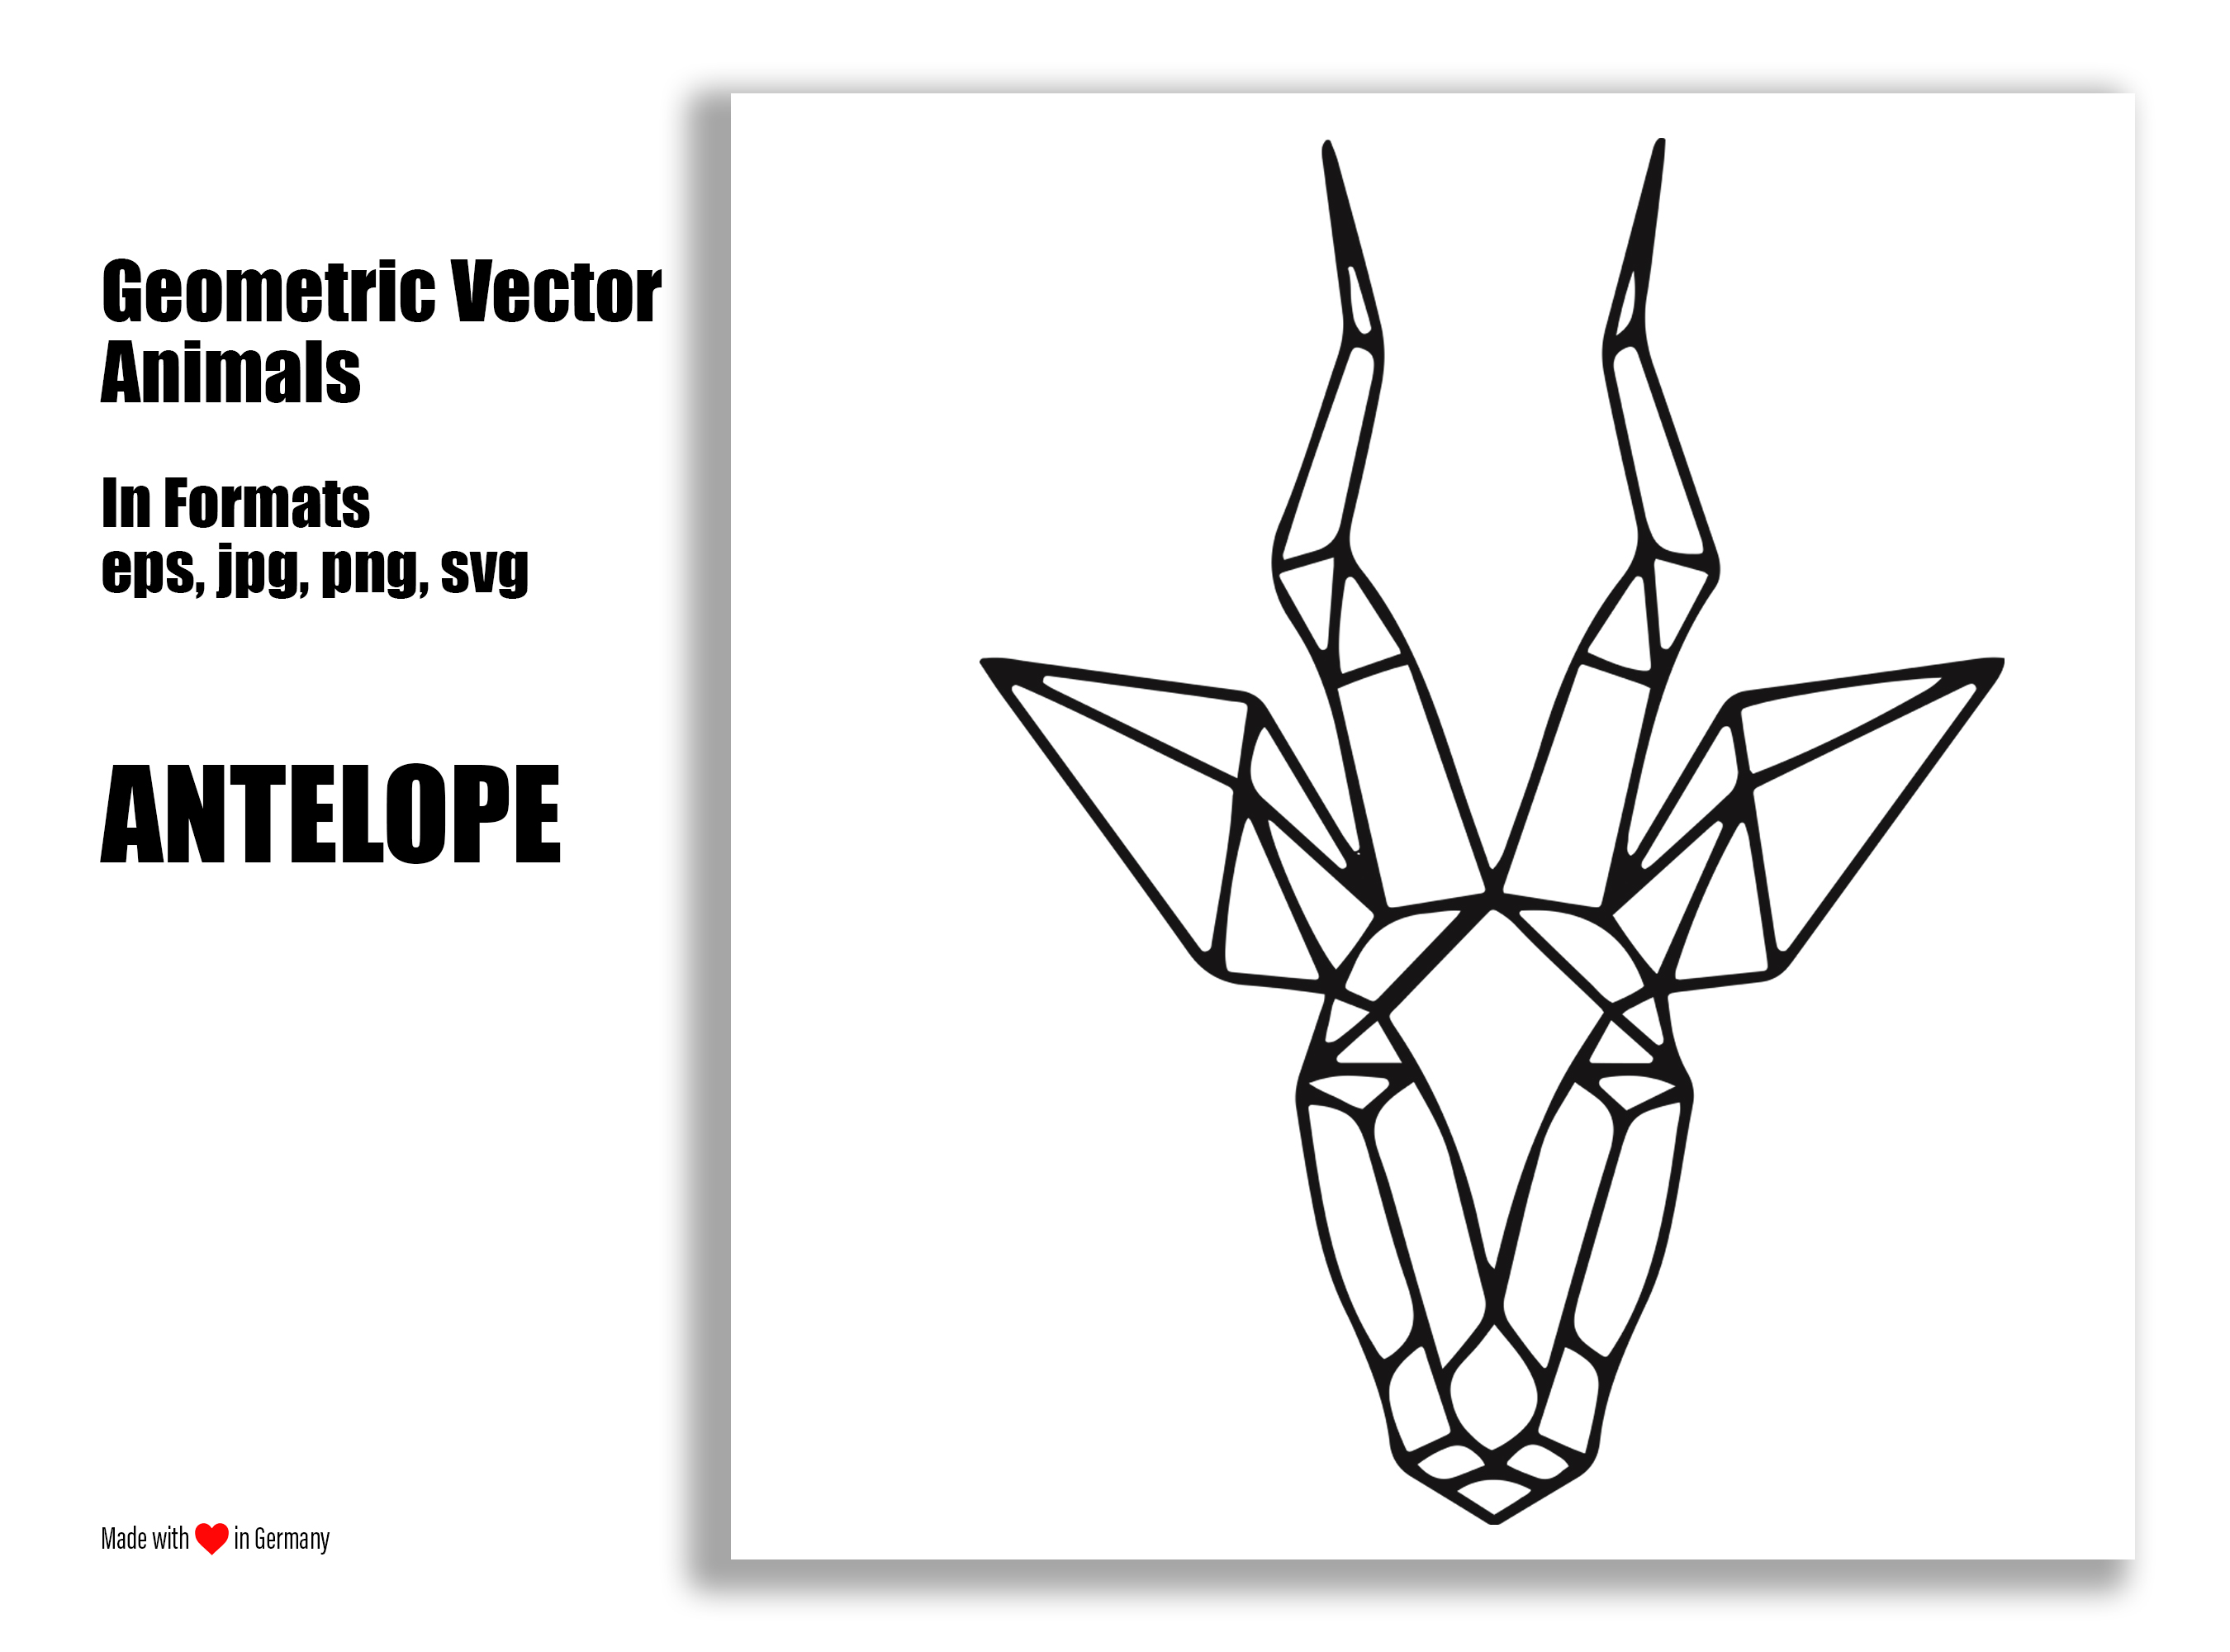 Geometric Vector Animals